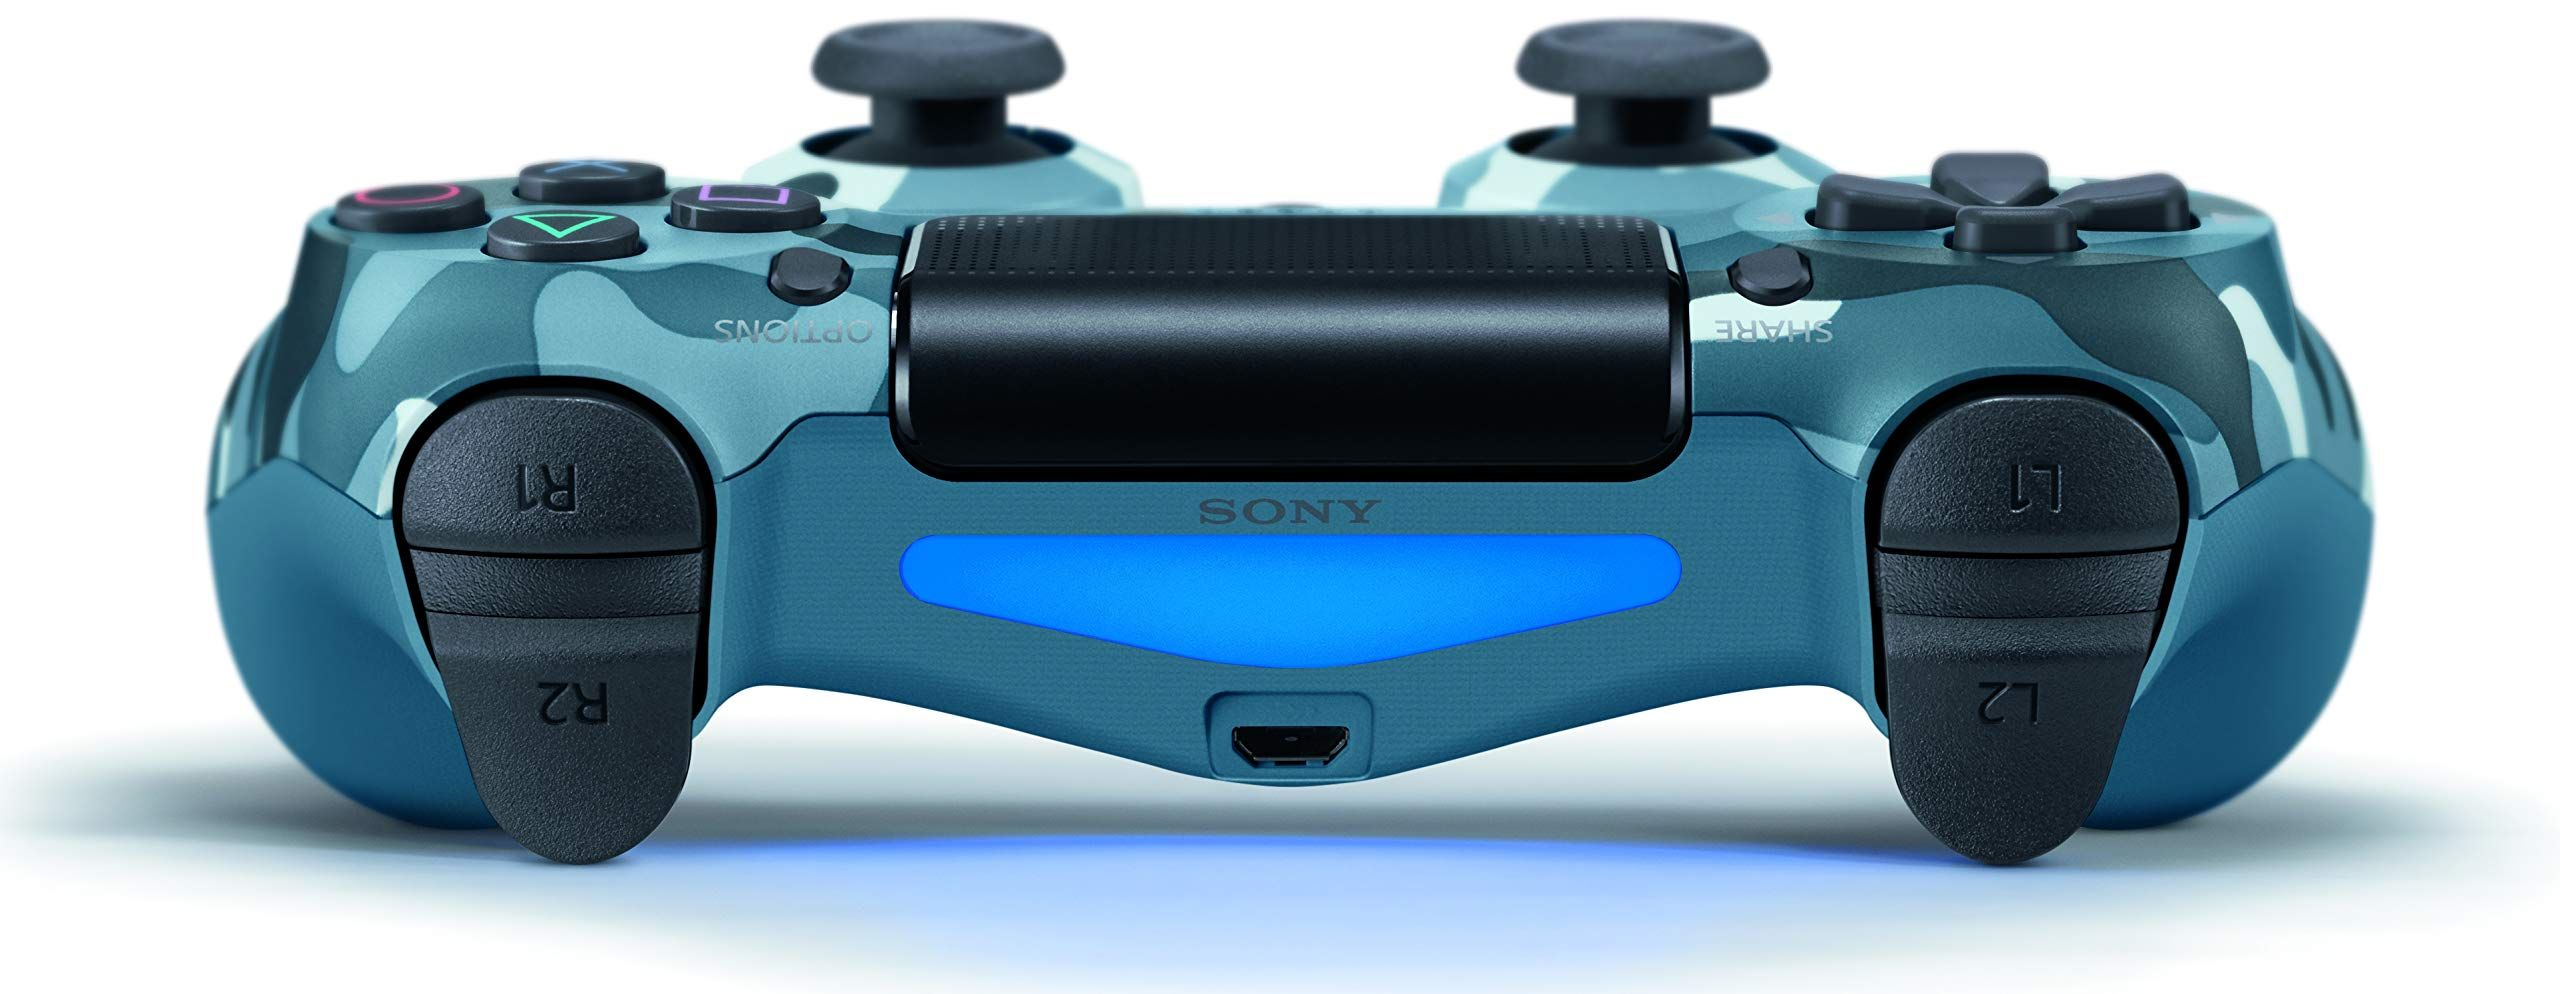 Dualshock 4 Wireless Controller For Playstation 4 Blue Camouflage Controller Wireless Dualshock Camoufla Dualshock Wireless Controller Blue Camouflage